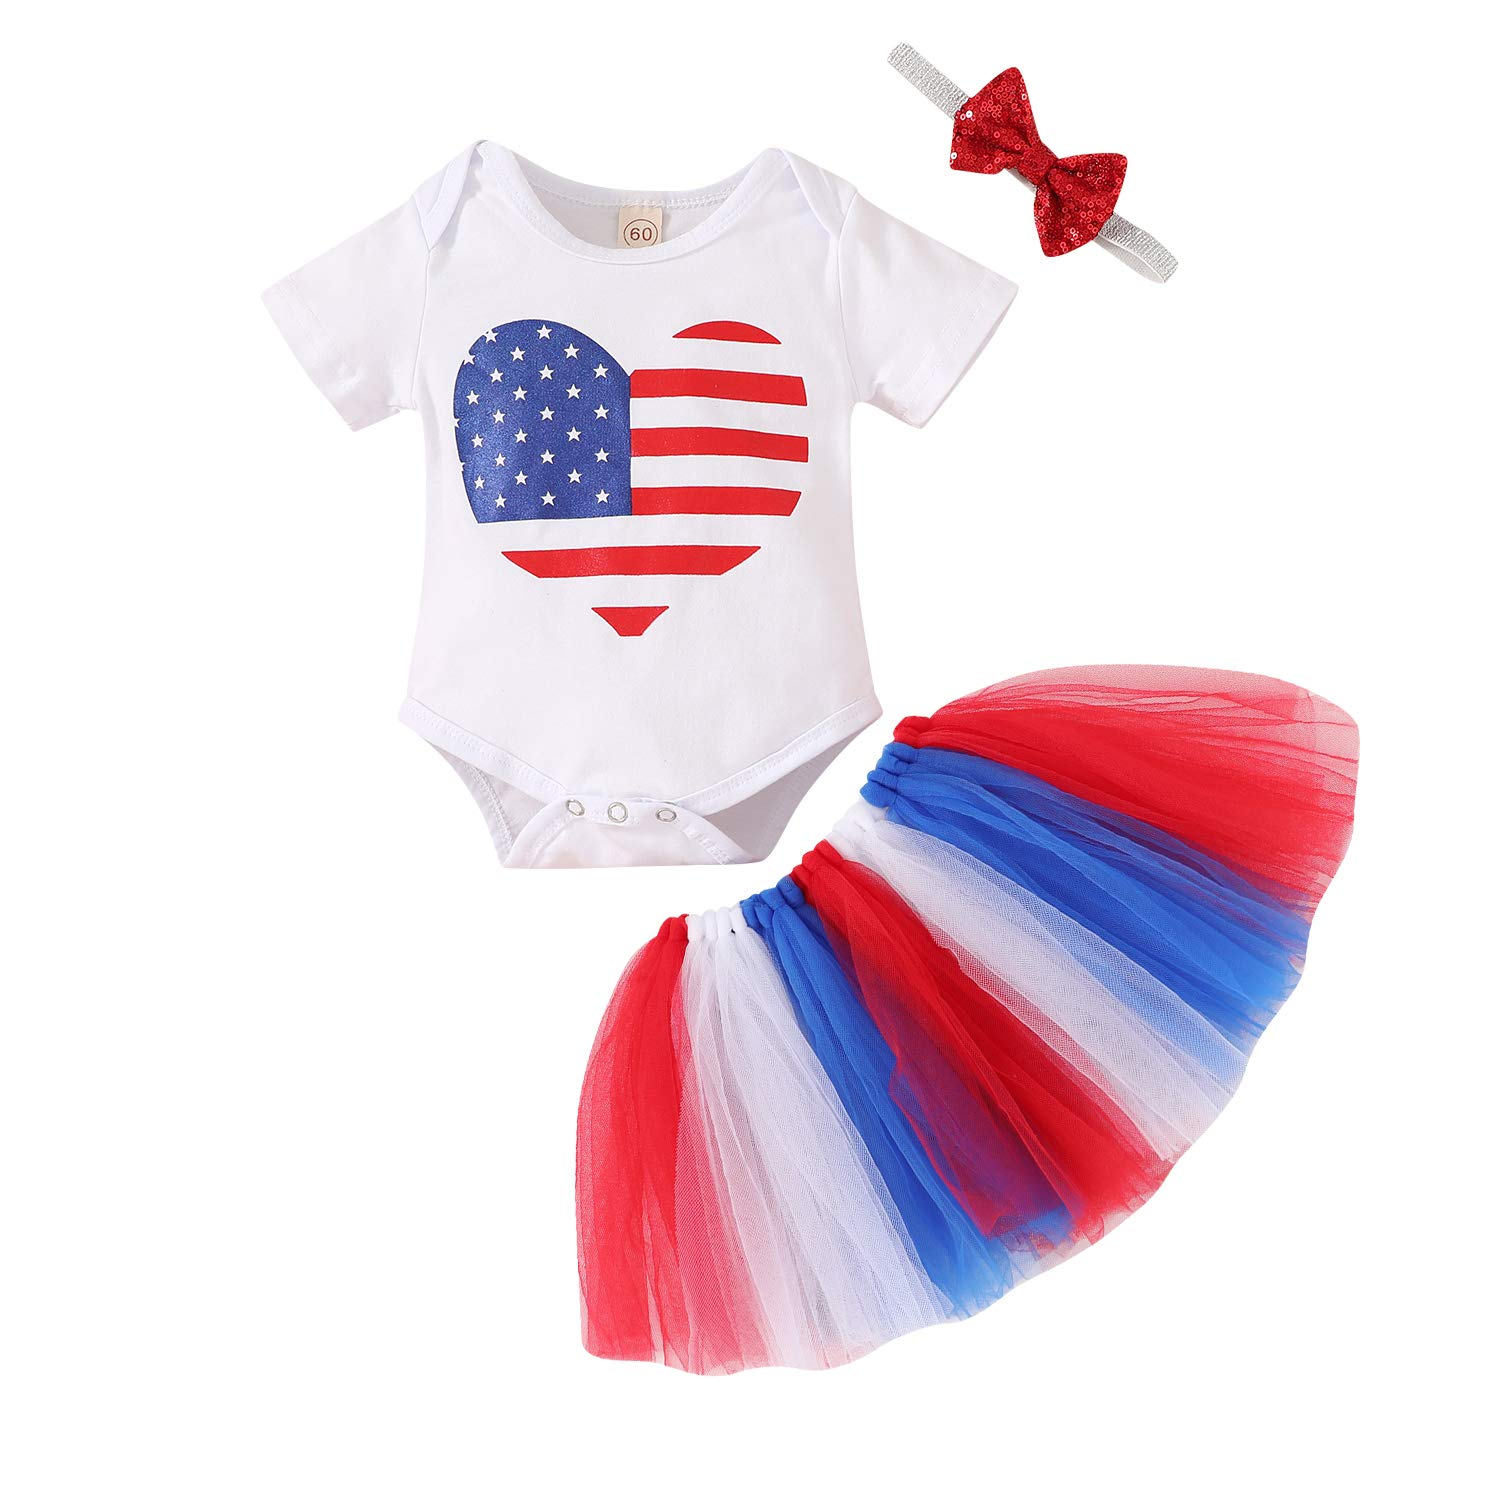 Newborn Baby Girl 4th of July Outfits Letter Printed Short Sleeve Romper+Tutu Skirt+Headbands 3PCS Infant Clothes Set